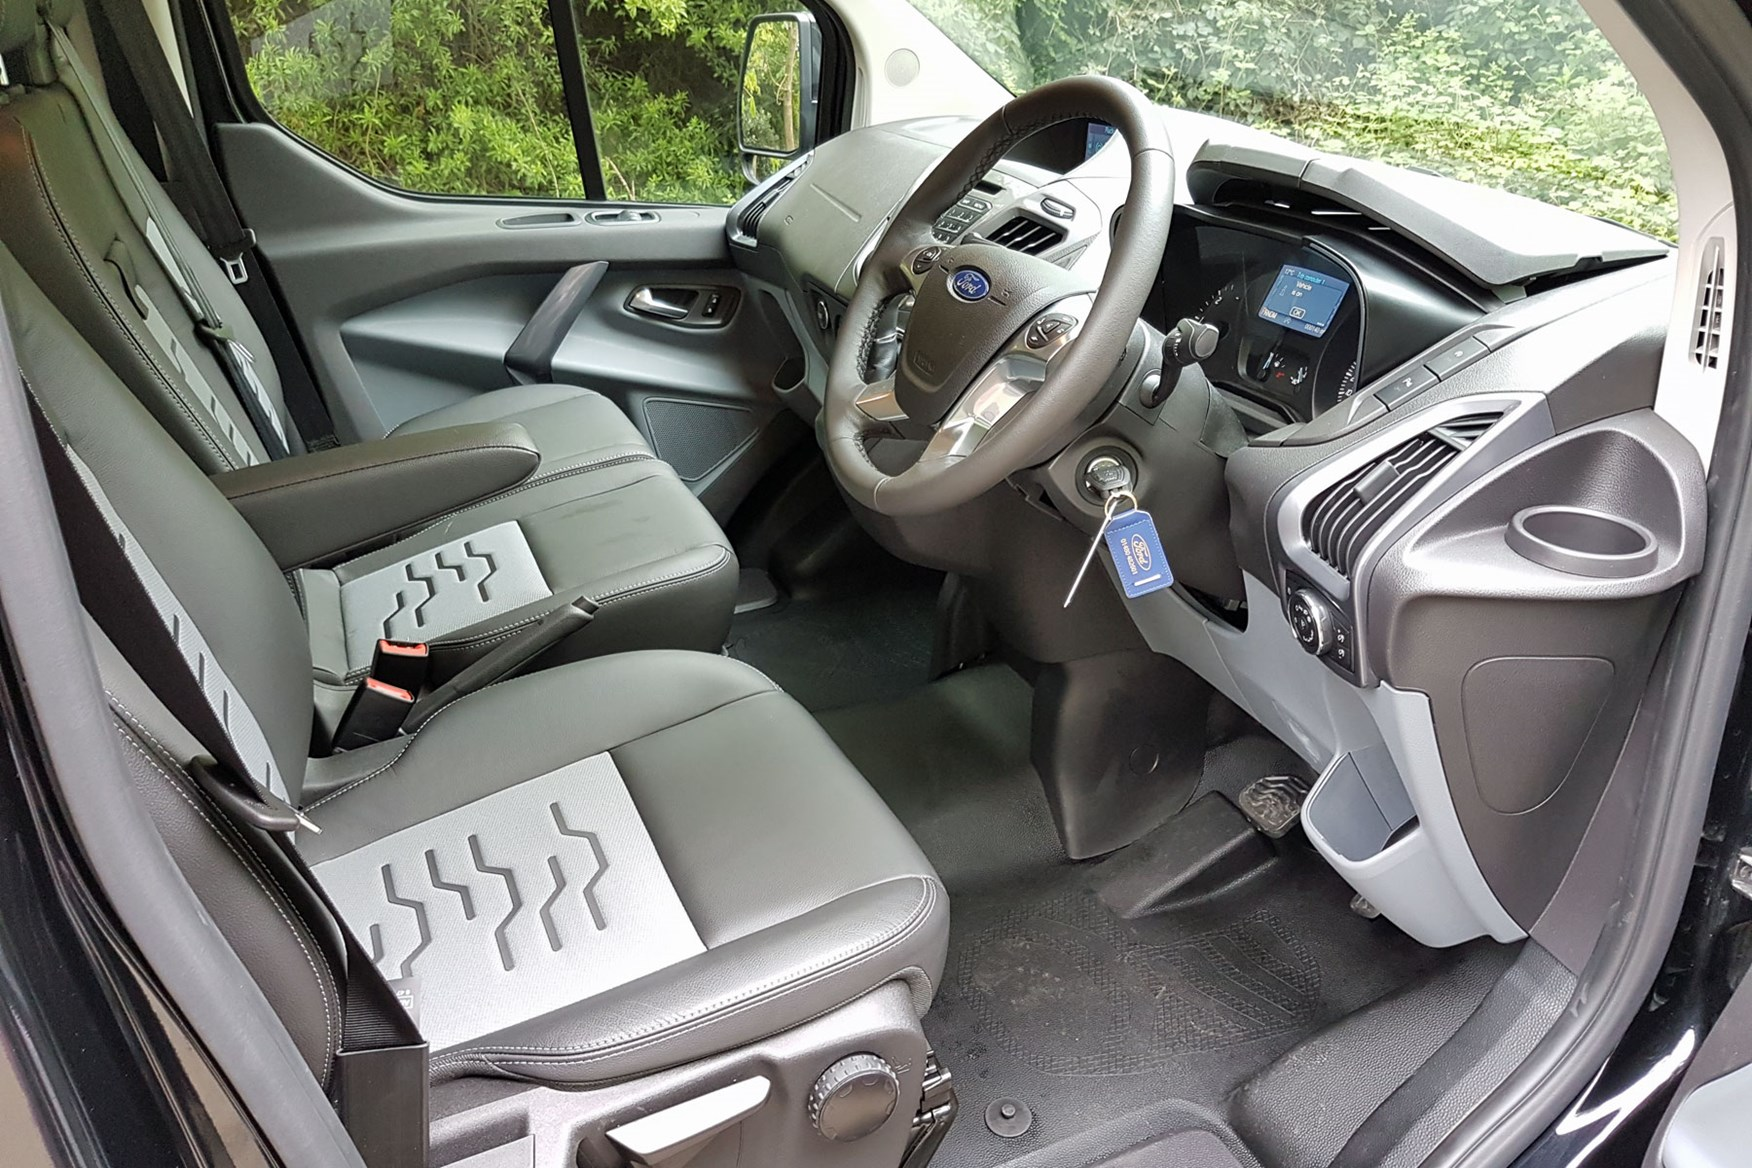 Ford Transit Custom Sport automatic cab interior